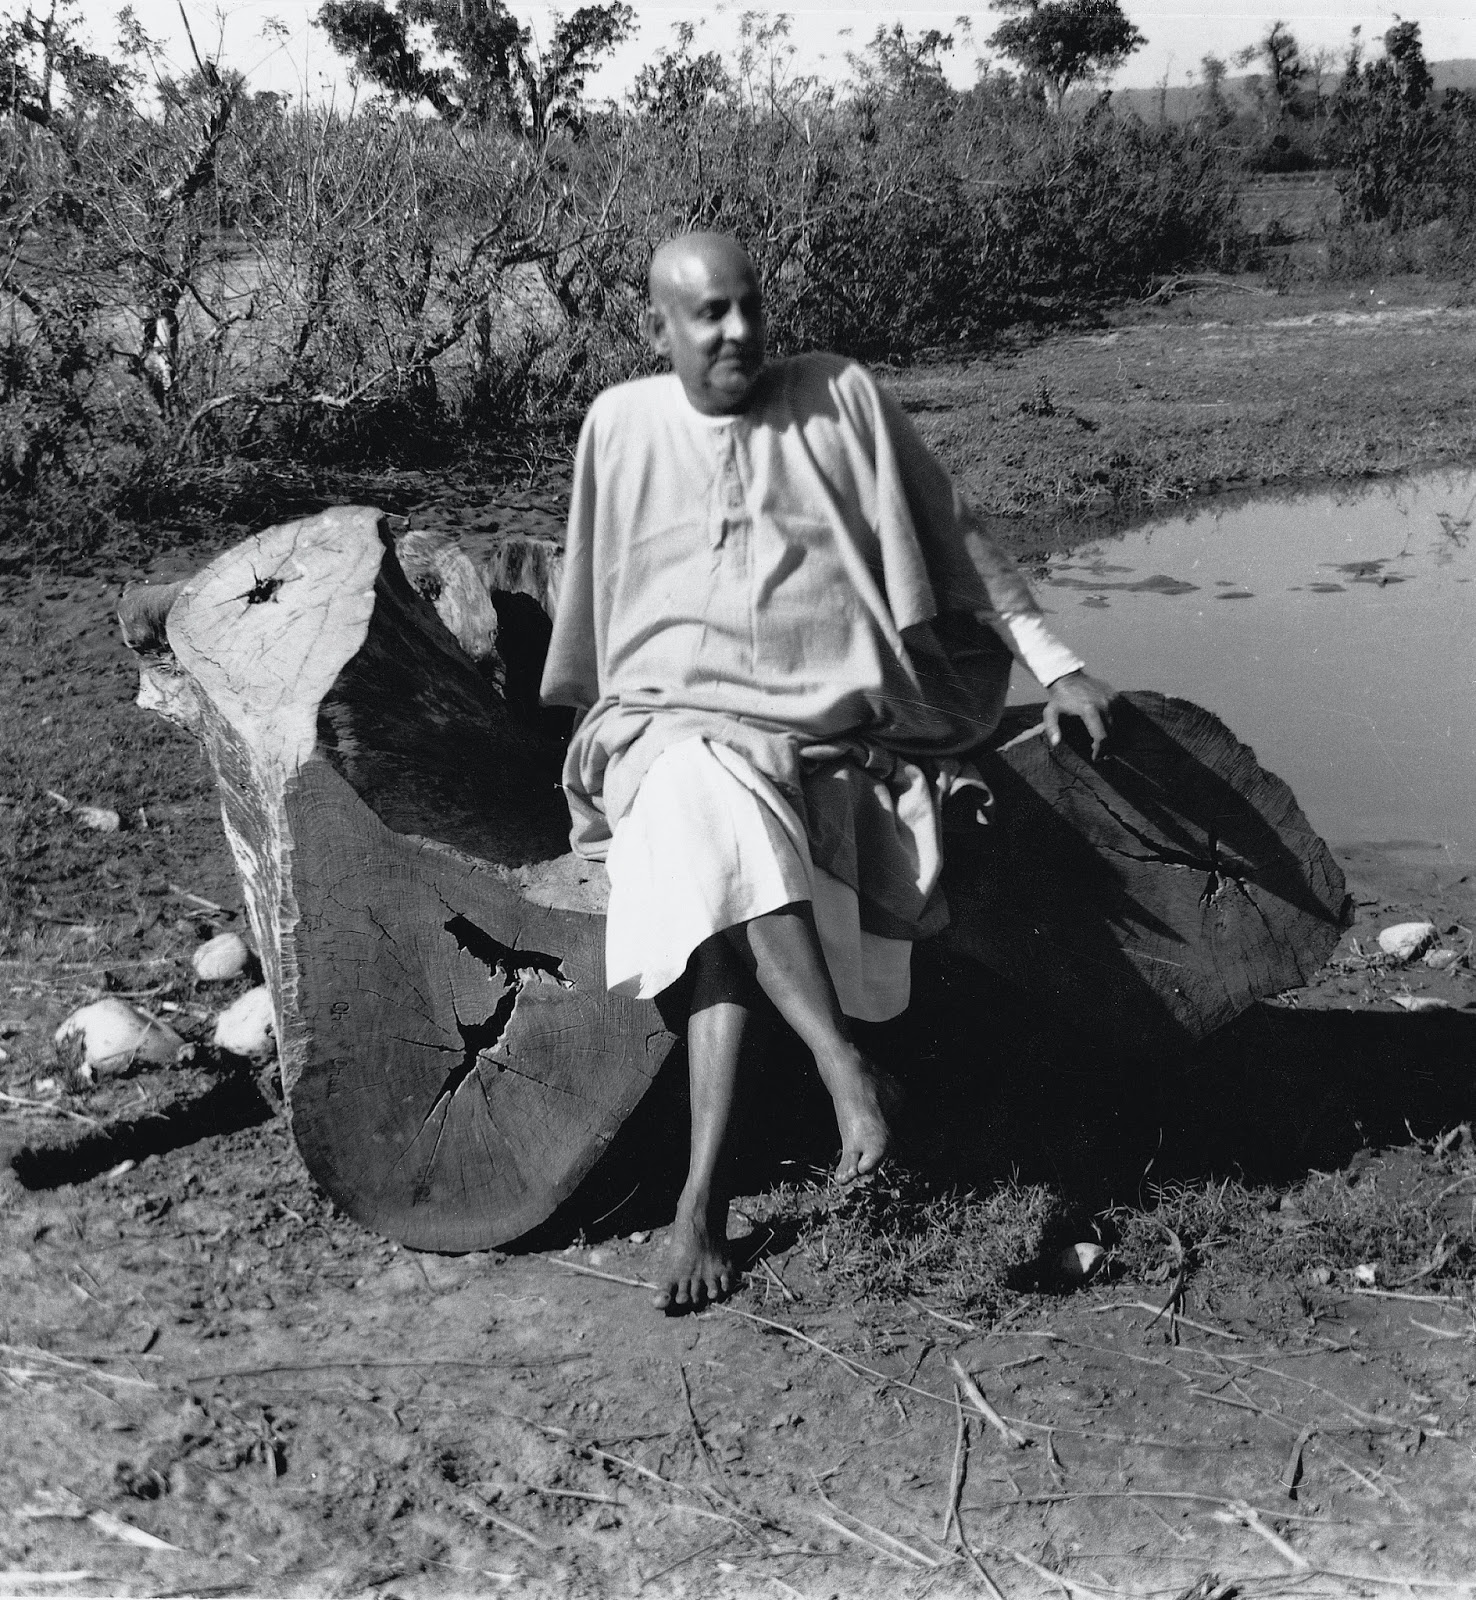 importance of ahimsa Mahatma gandhi: hinduism at its best his life, religion, civil rights struggles, spirituality and and famous quotations.